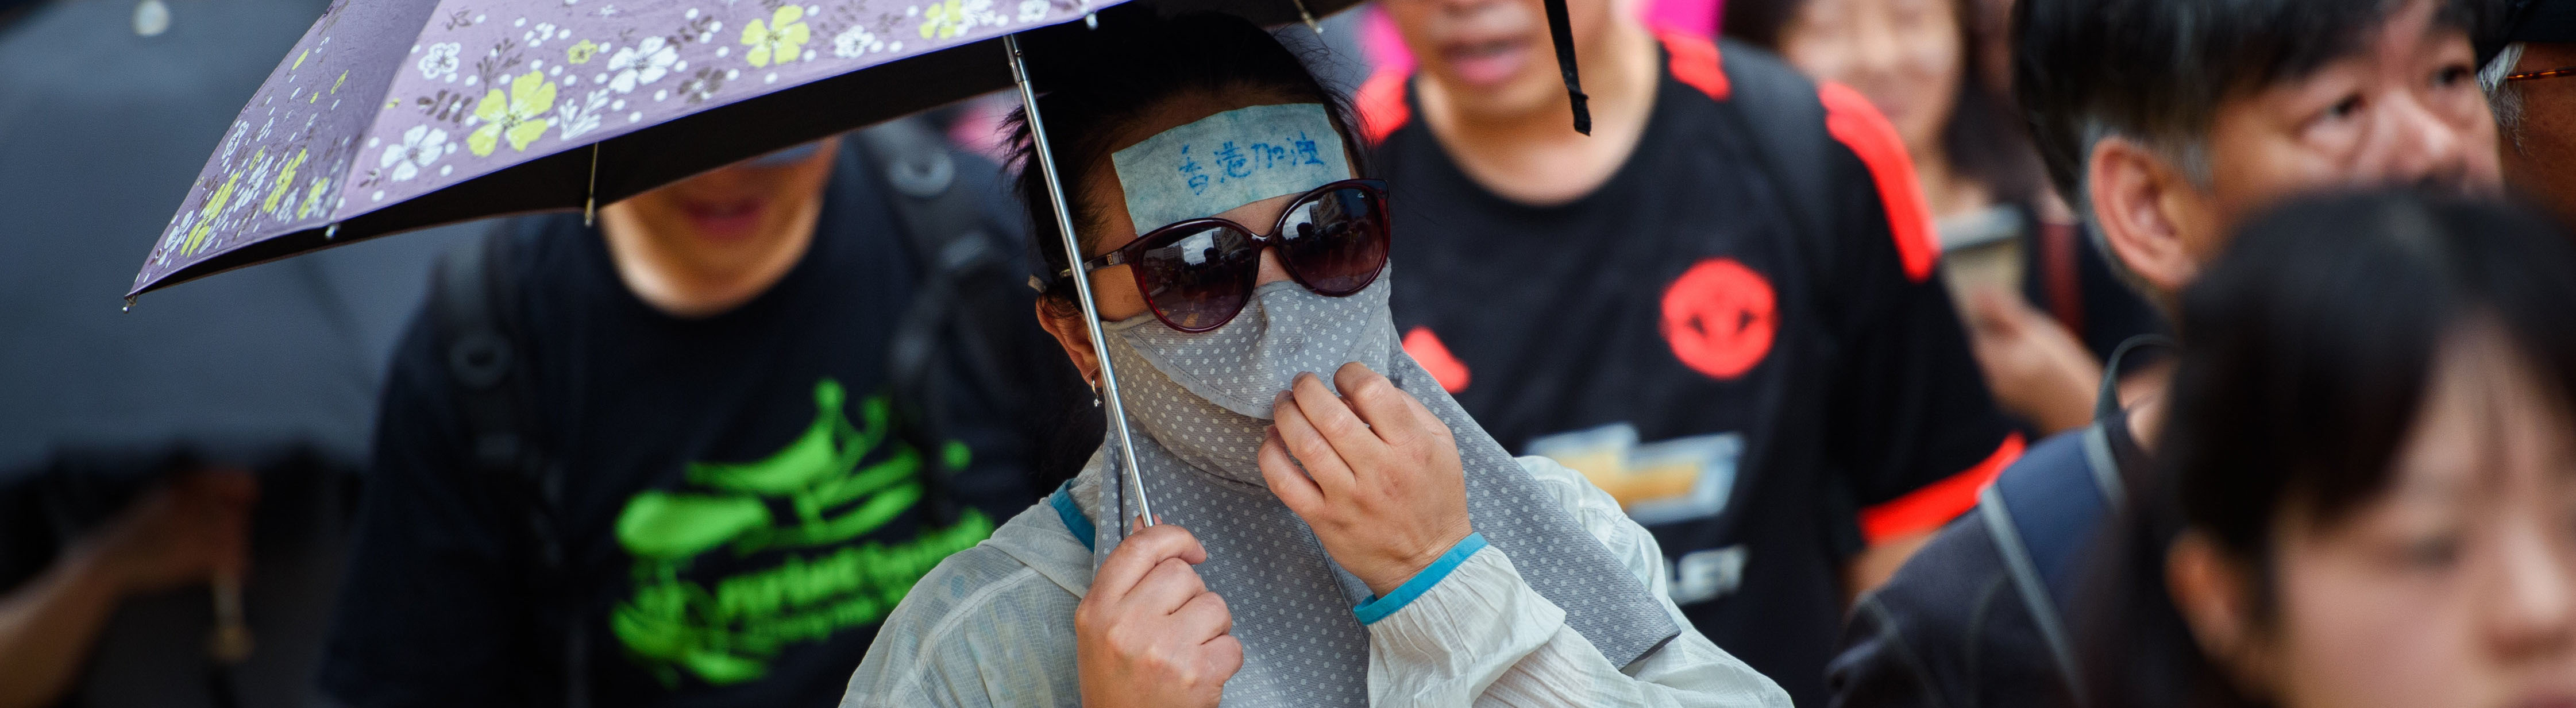 Vermummte Demonstrantin in Hongkong mit Regenschirm.